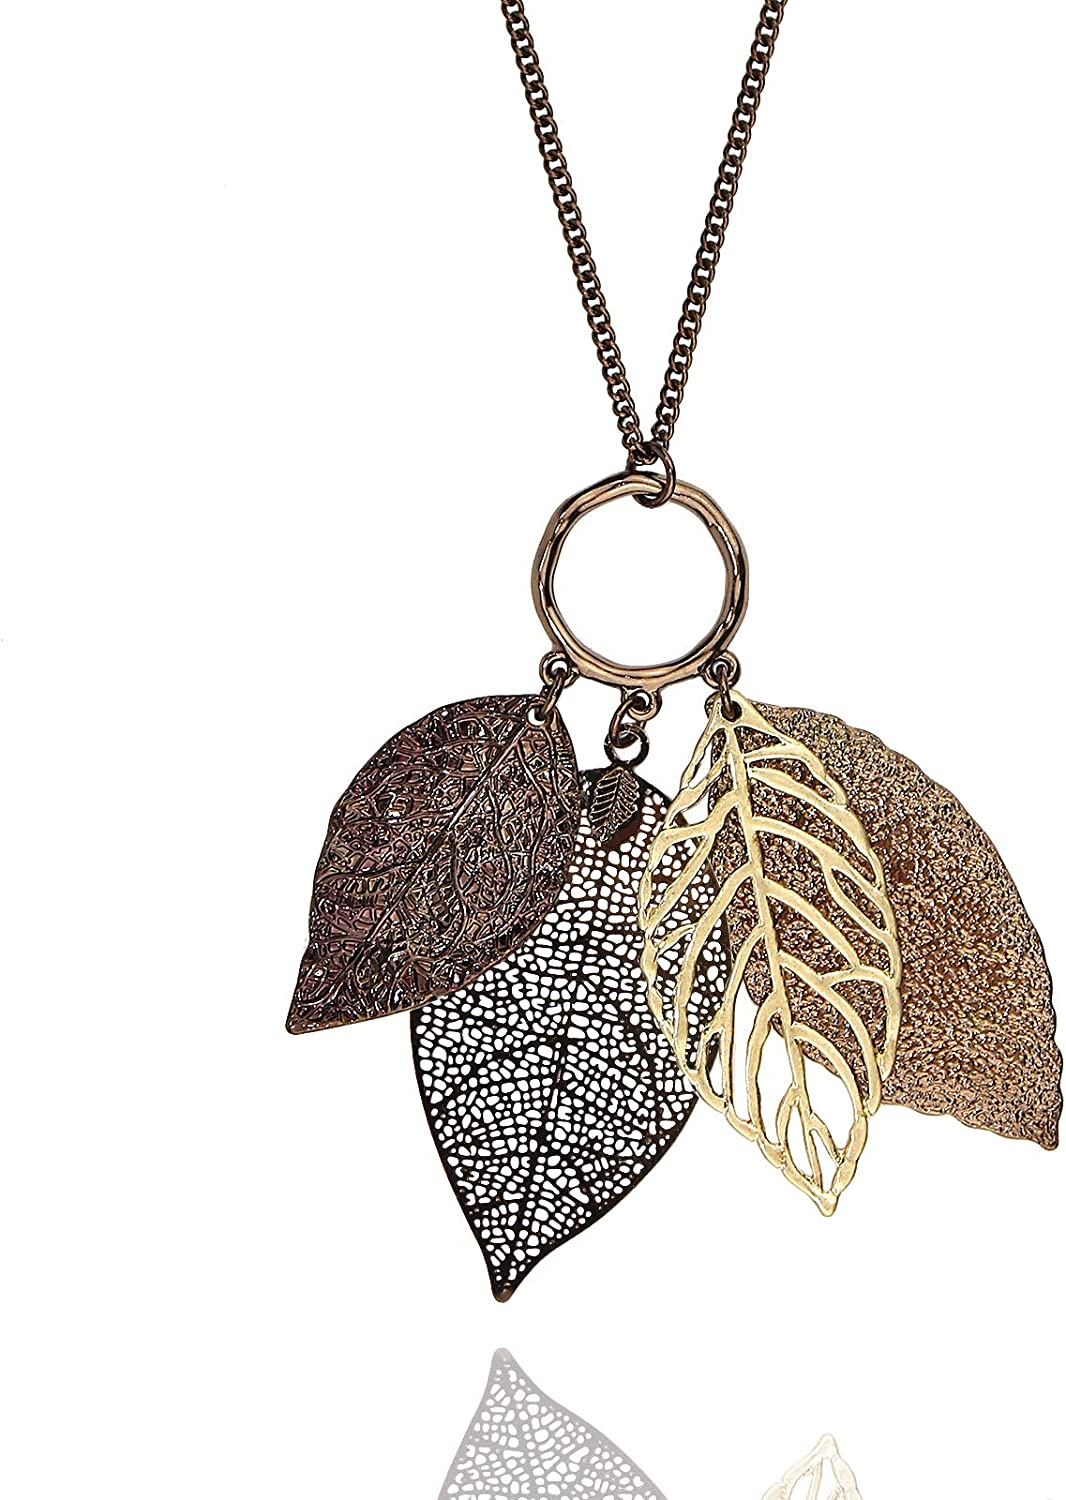 Pomina Gold Silver Two Tone Filigree Leaf Pendant Long Necklace Chic Pendant Chain Necklace for Women